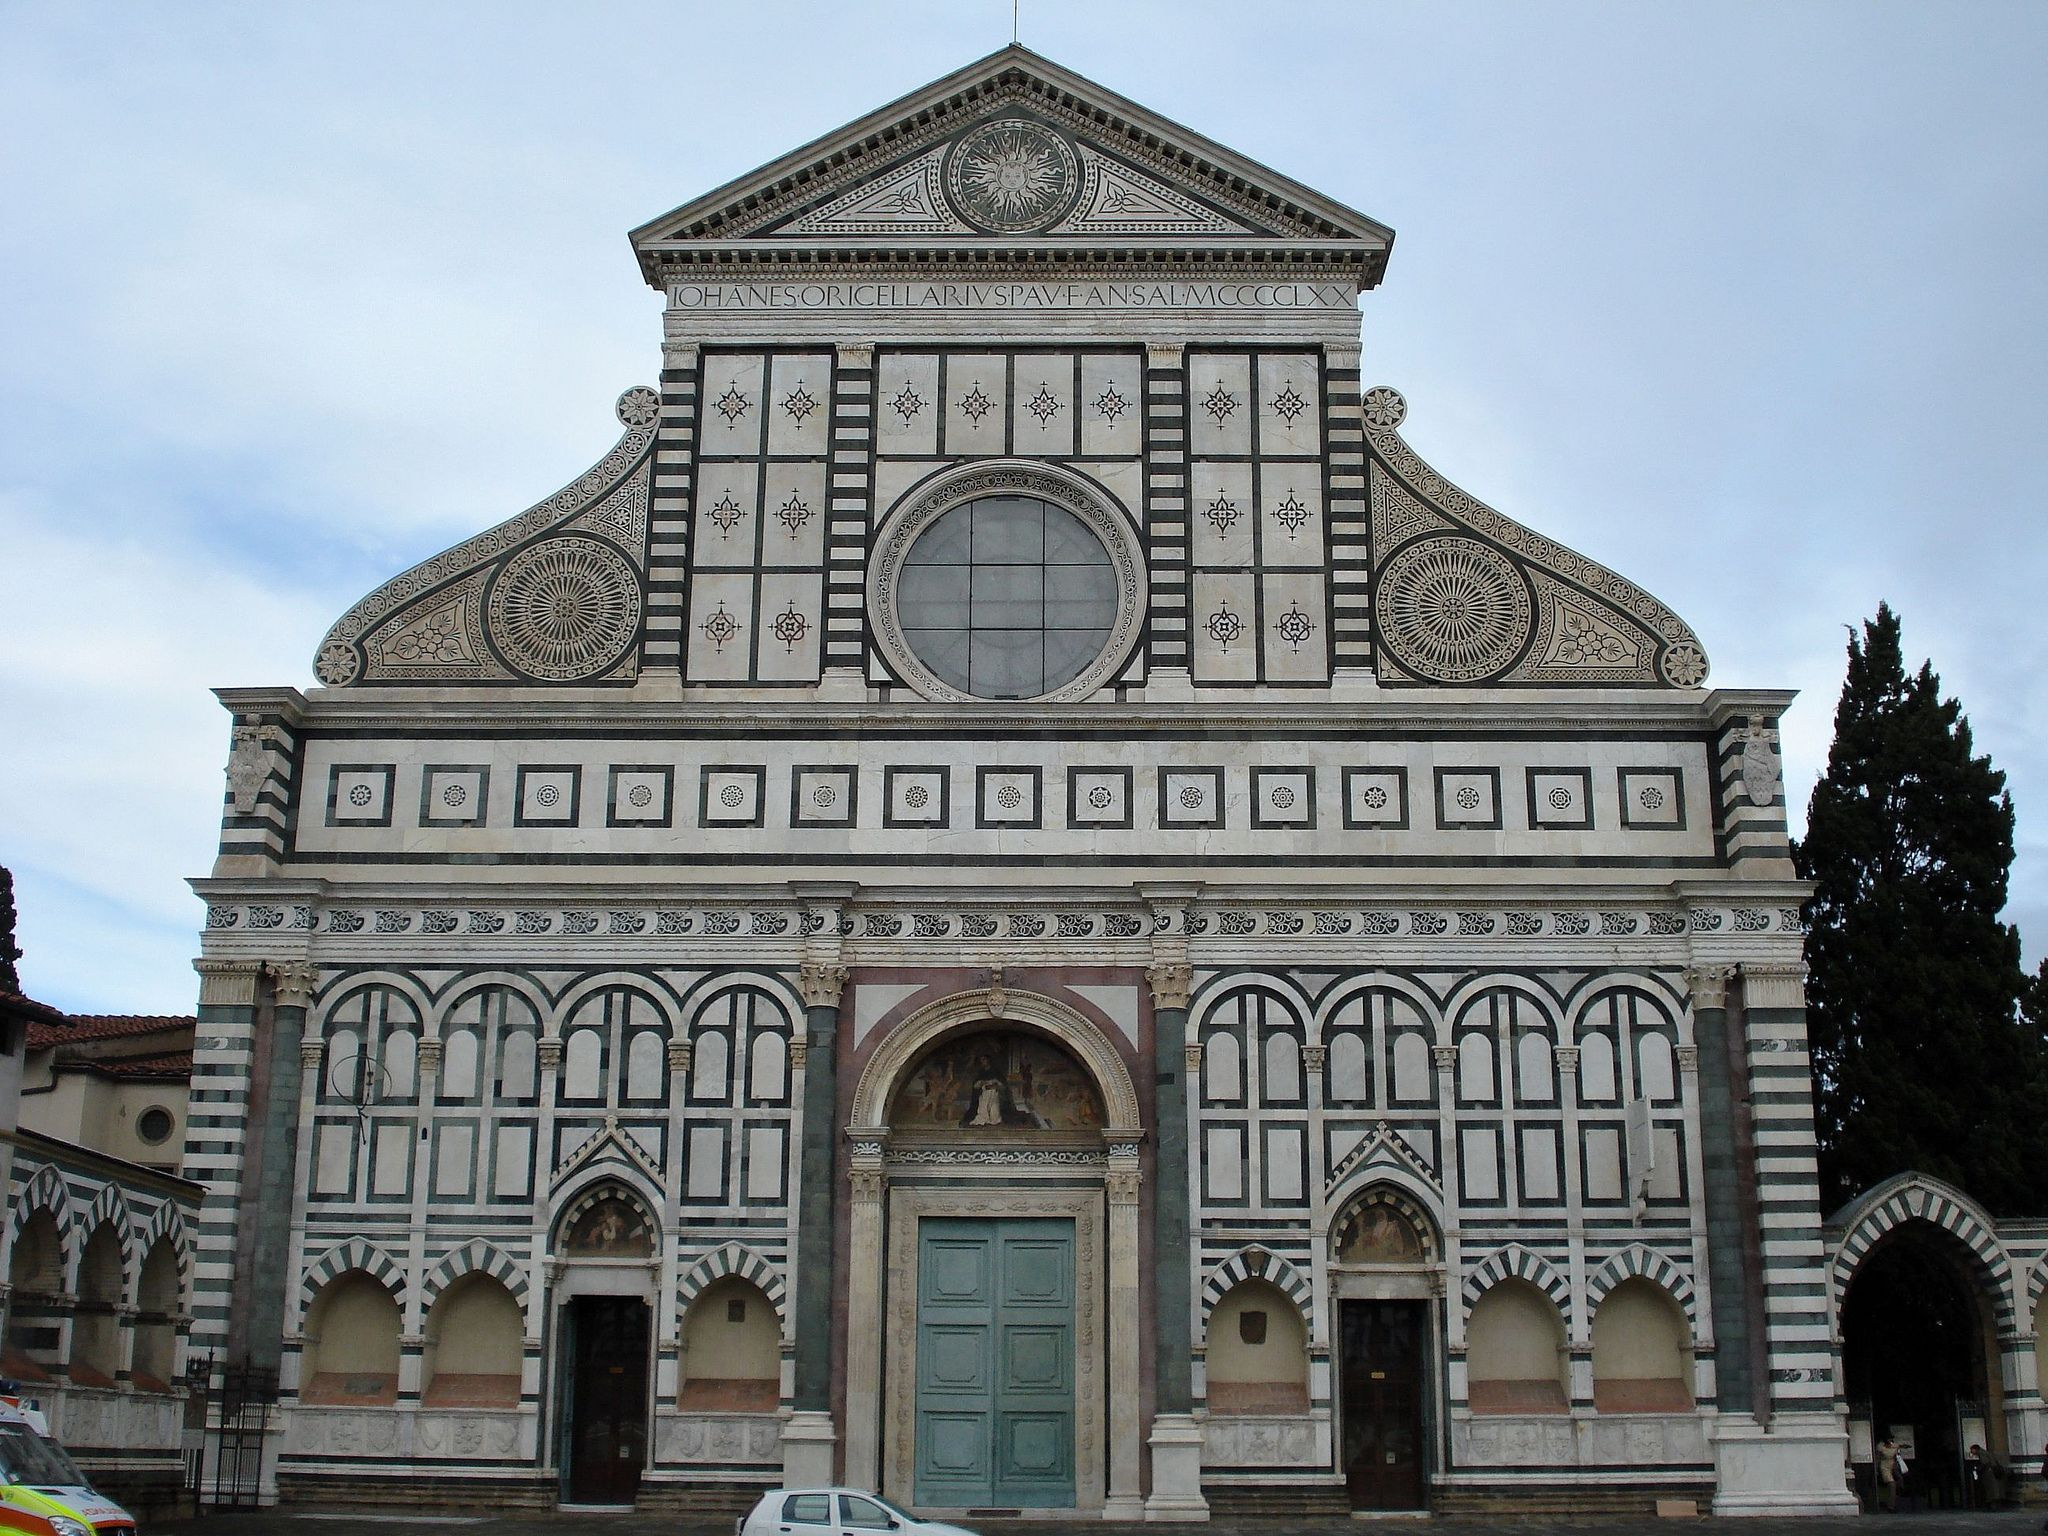 020 Early Renaissance Alberti Facade Of Santa Maria